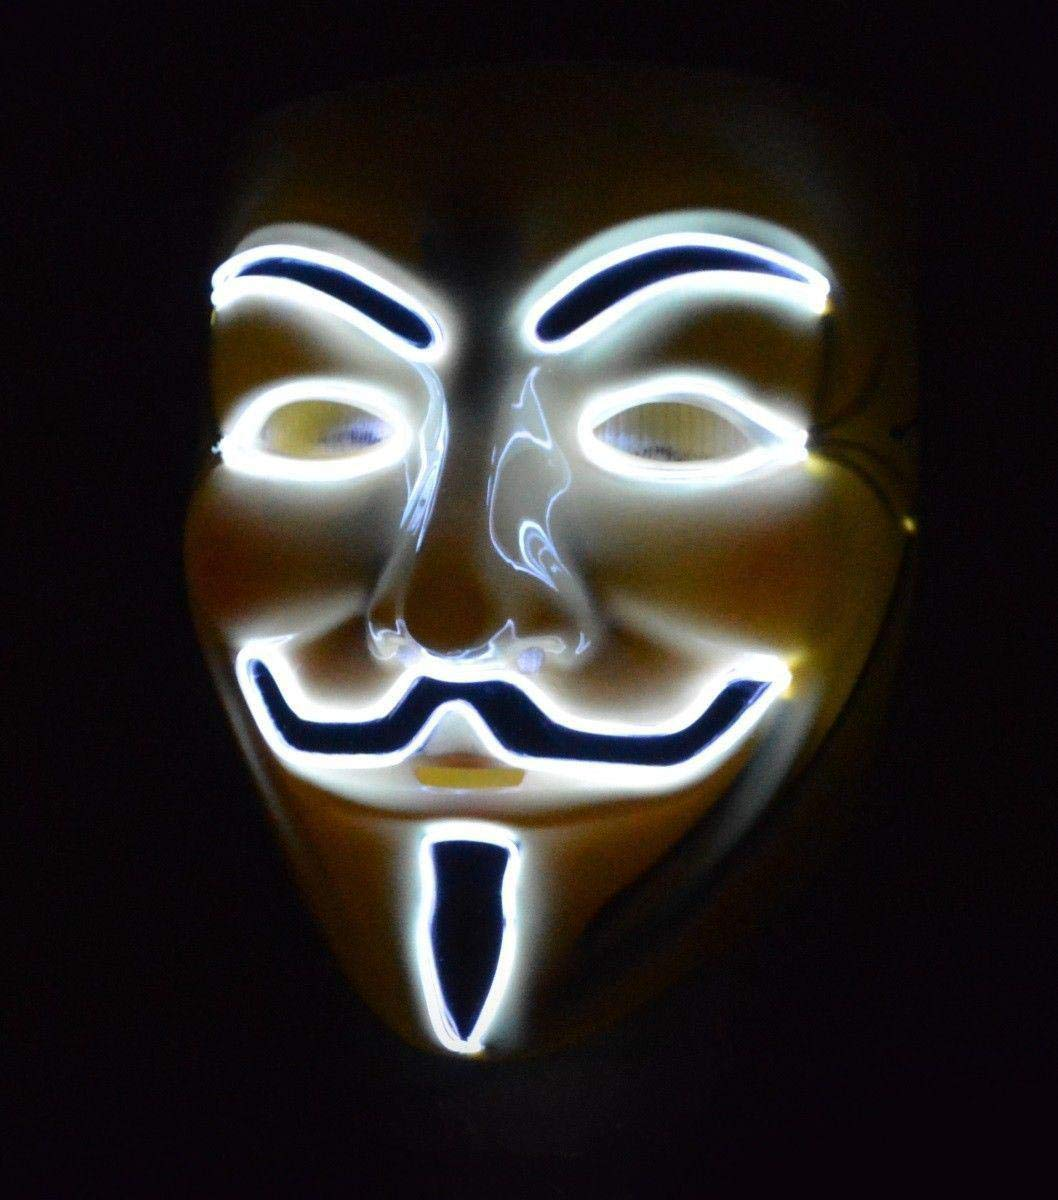 Flashez led anonymous hacker face mask light up guy fawkes v for vendetta festival party rave fancy dress uk brand amazon co uk toys games